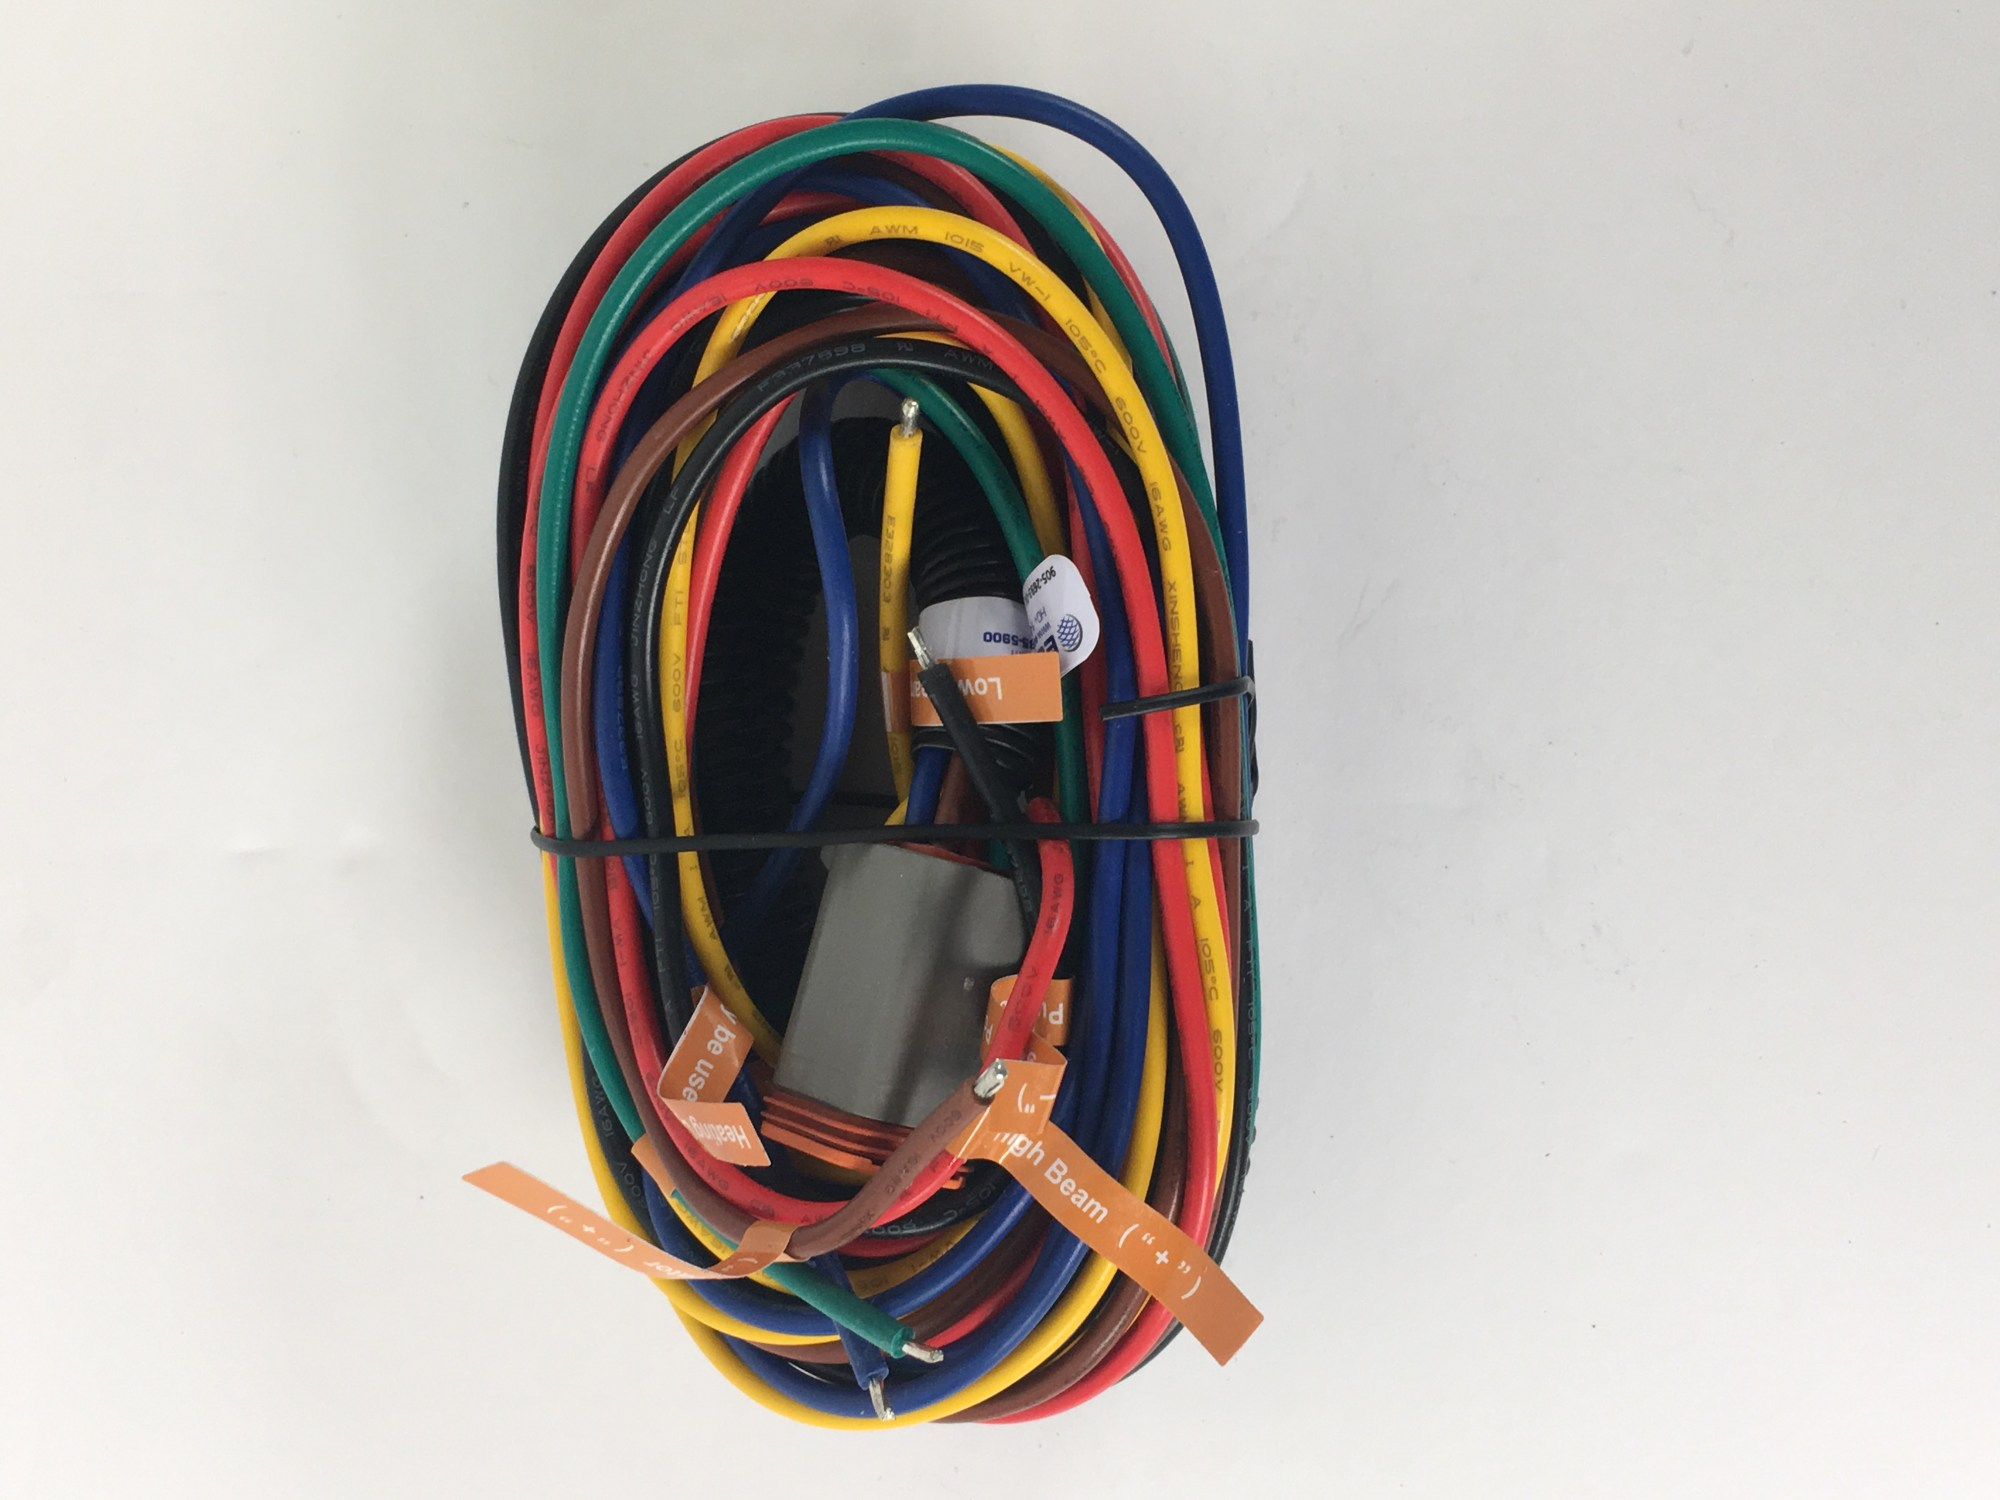 hight resolution of ecco electronic ez4010 wire spotlight wiring harness extension replacement for ew4010 series work light zoomed image